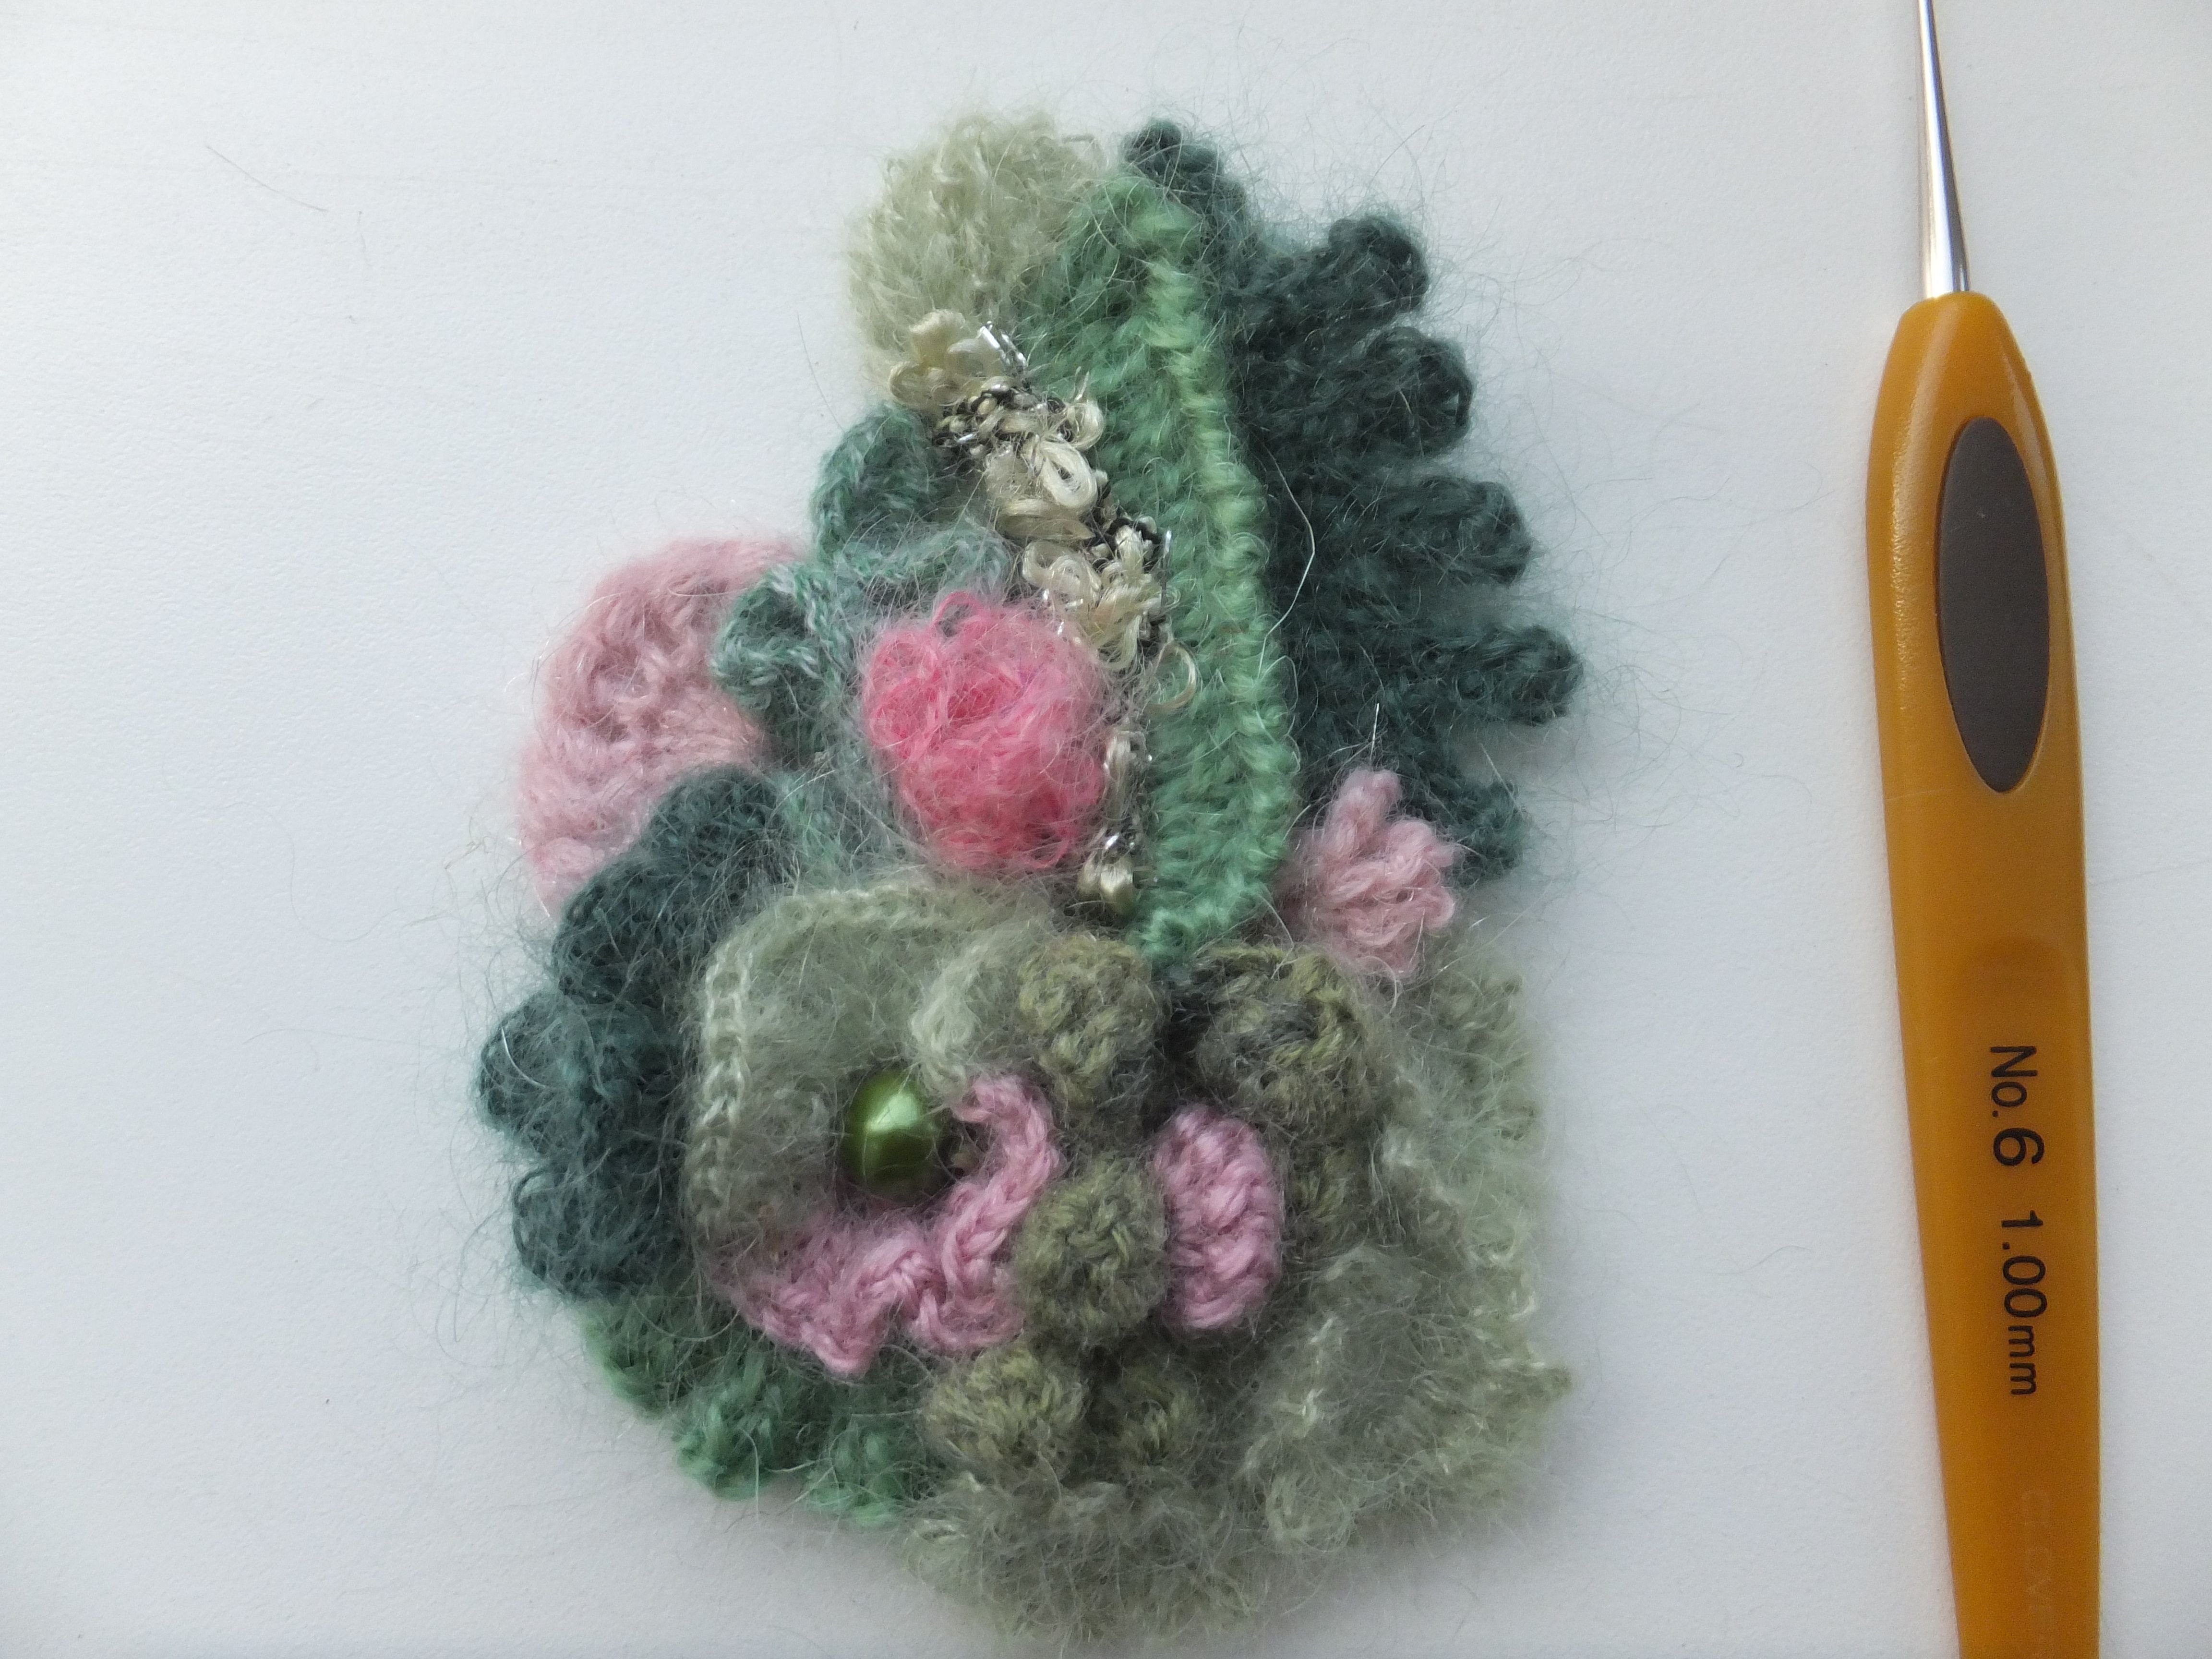 pin crochet etsy ornament flower crocheted brooch shop com applique